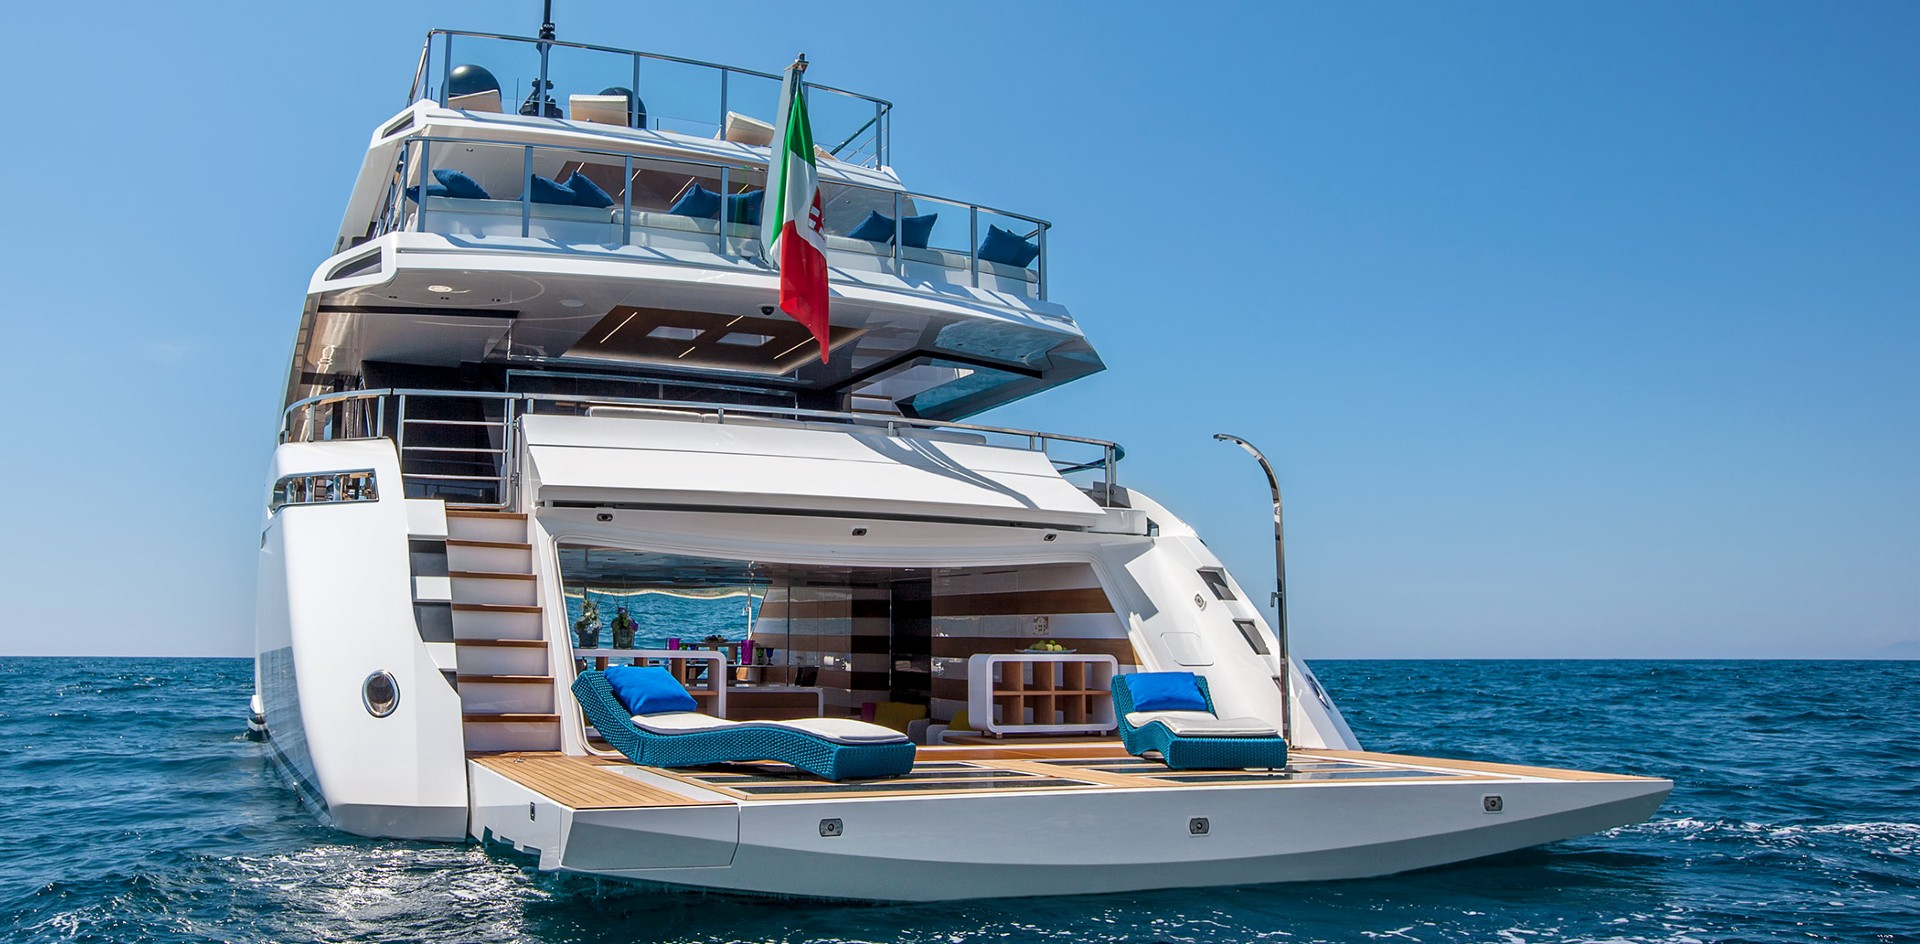 The best beach club on board a yacht